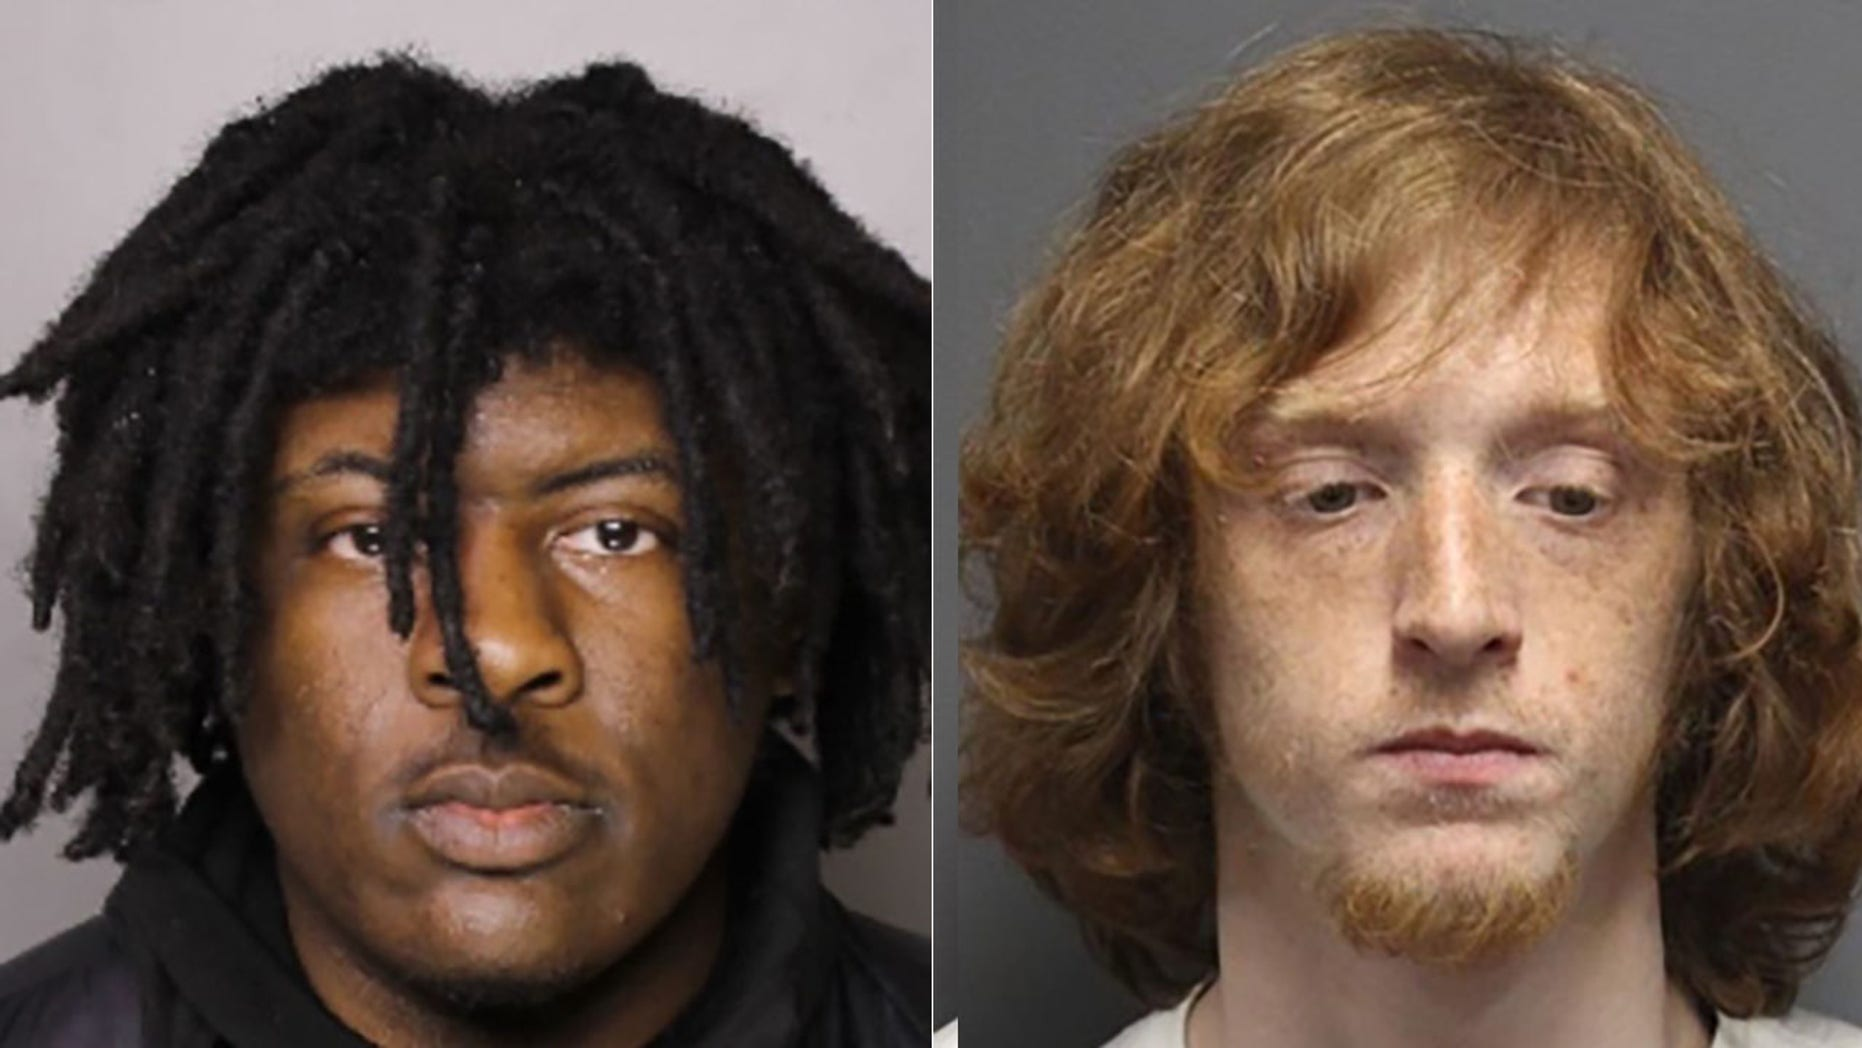 Westlake Legal Group cortez-cunningham Teen, 3 friends charged in beating, stabbing death of grandfather, 71, for $30G kept in safe, police say fox-news/us/us-regions/northeast/pennsylvania fox-news/us/crime/homicide fox news fnc/us fnc Dom Calicchio article 897b0bac-9cbd-56d3-825b-245f6477cd62